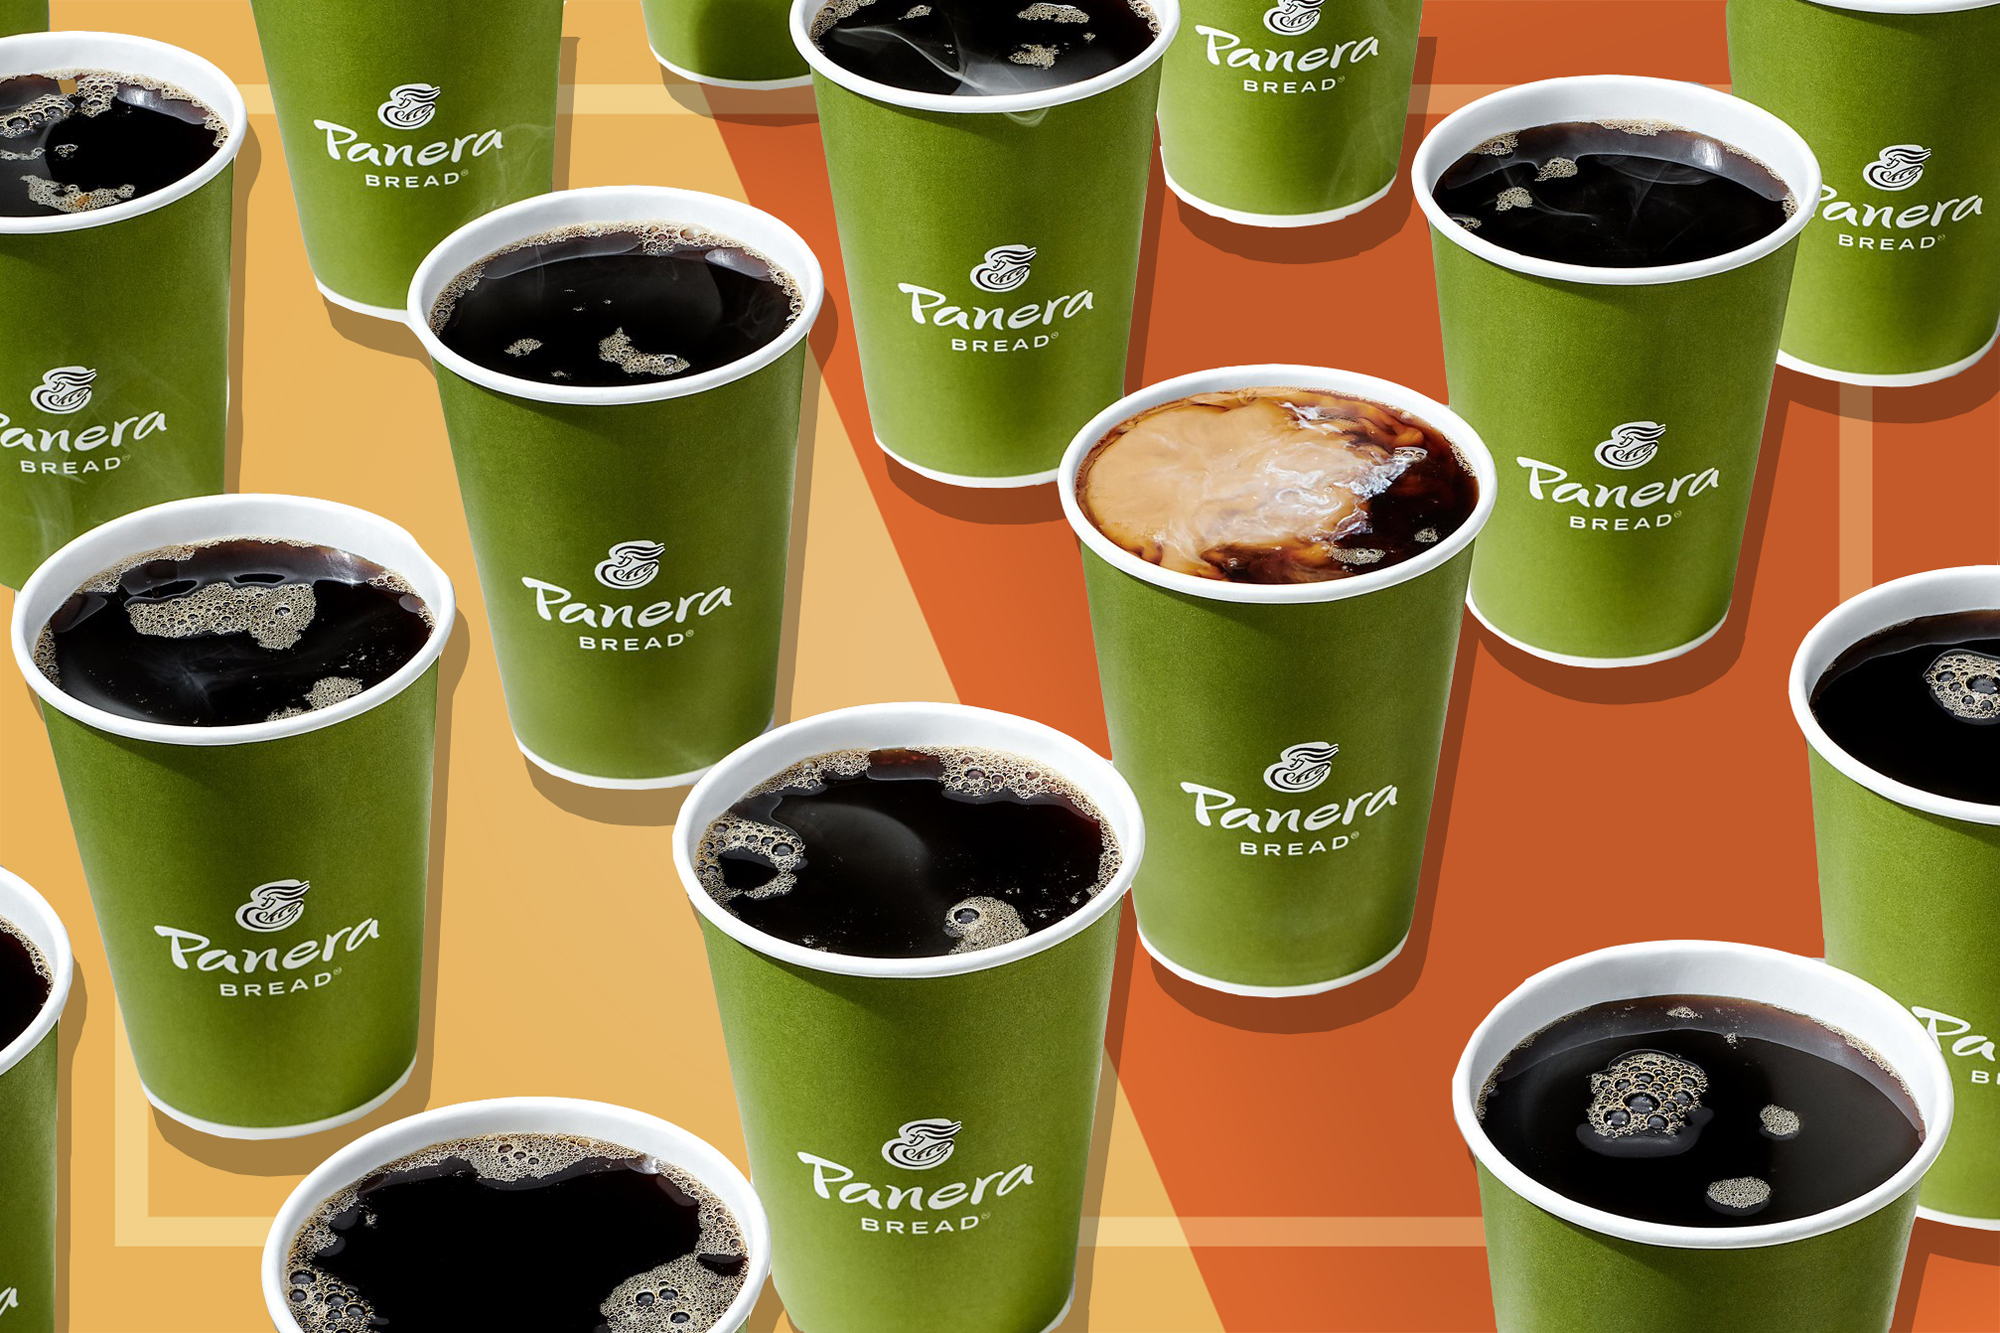 Starting today, February 27, Panera is launching its nationwide Coffee Subscription at $8.99 a month.